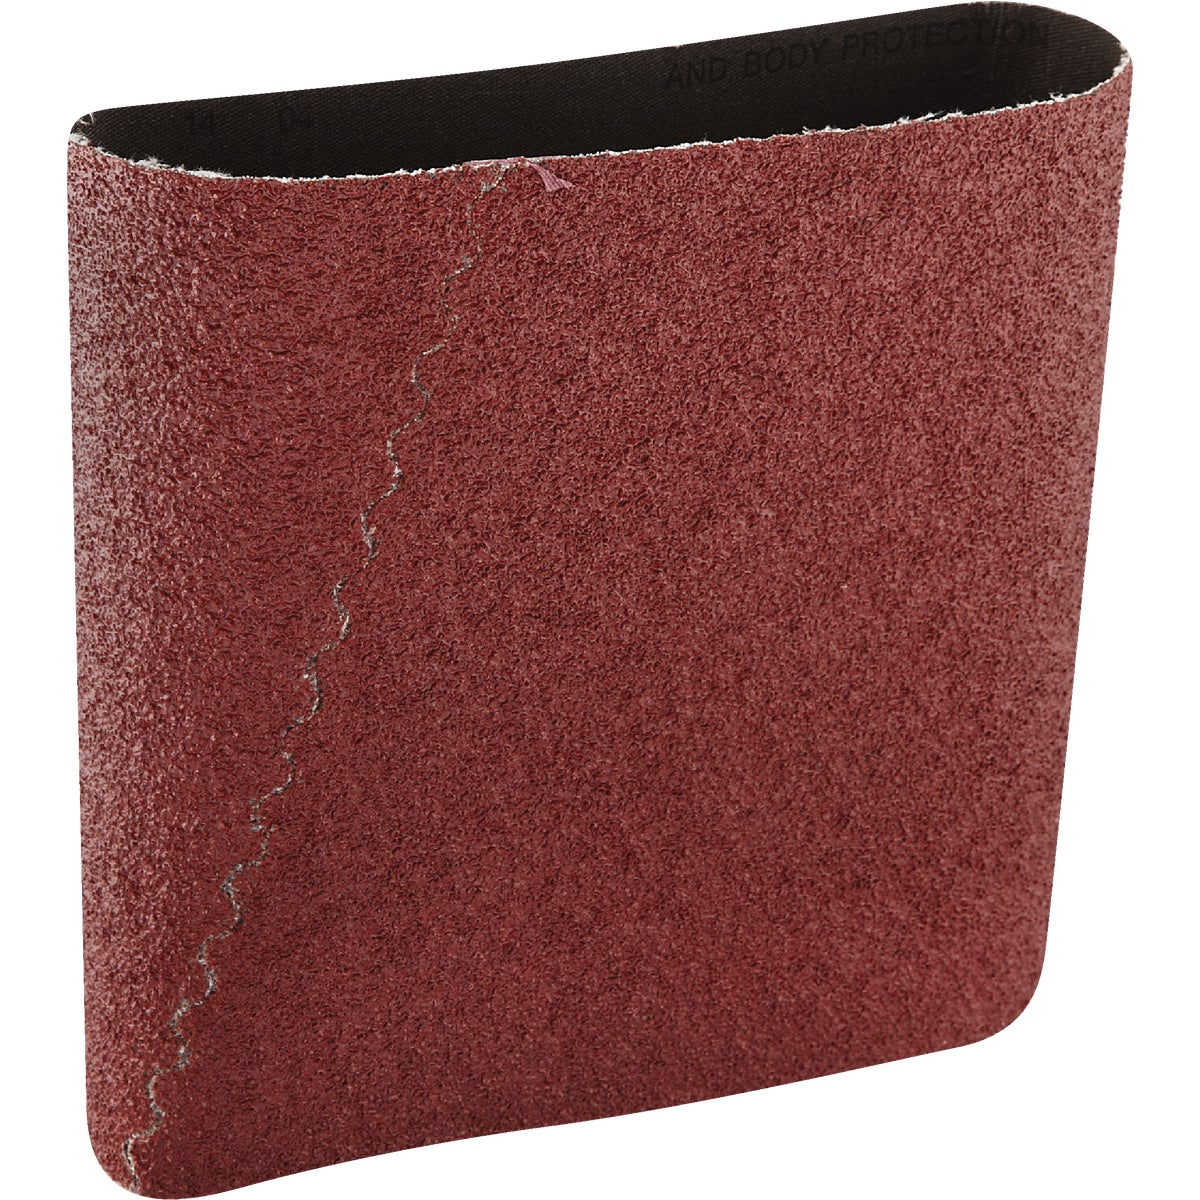 40G FLOOR SANDING BELT - 018-881940 by Virginia Abrasives